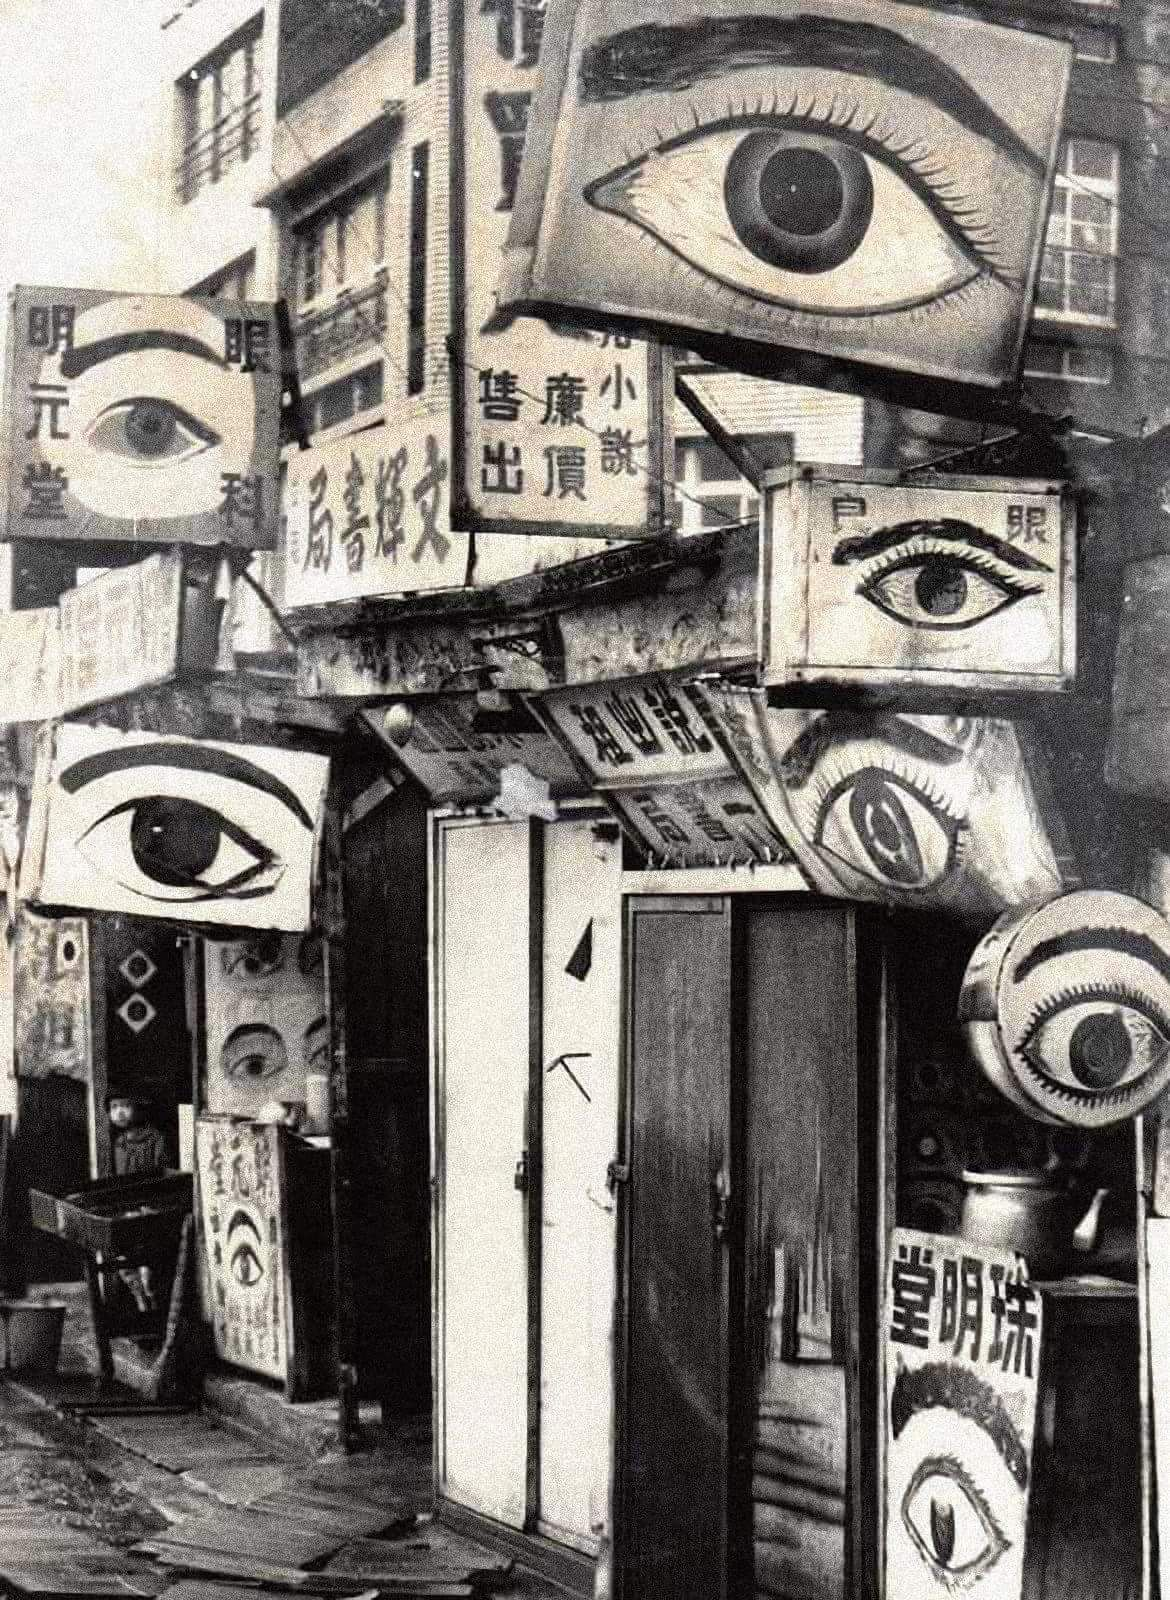 Yanaizu Aoyama ophthalmology taken by Photographer Wang Shuangqua / king bi-all (Tainan, 1962.)